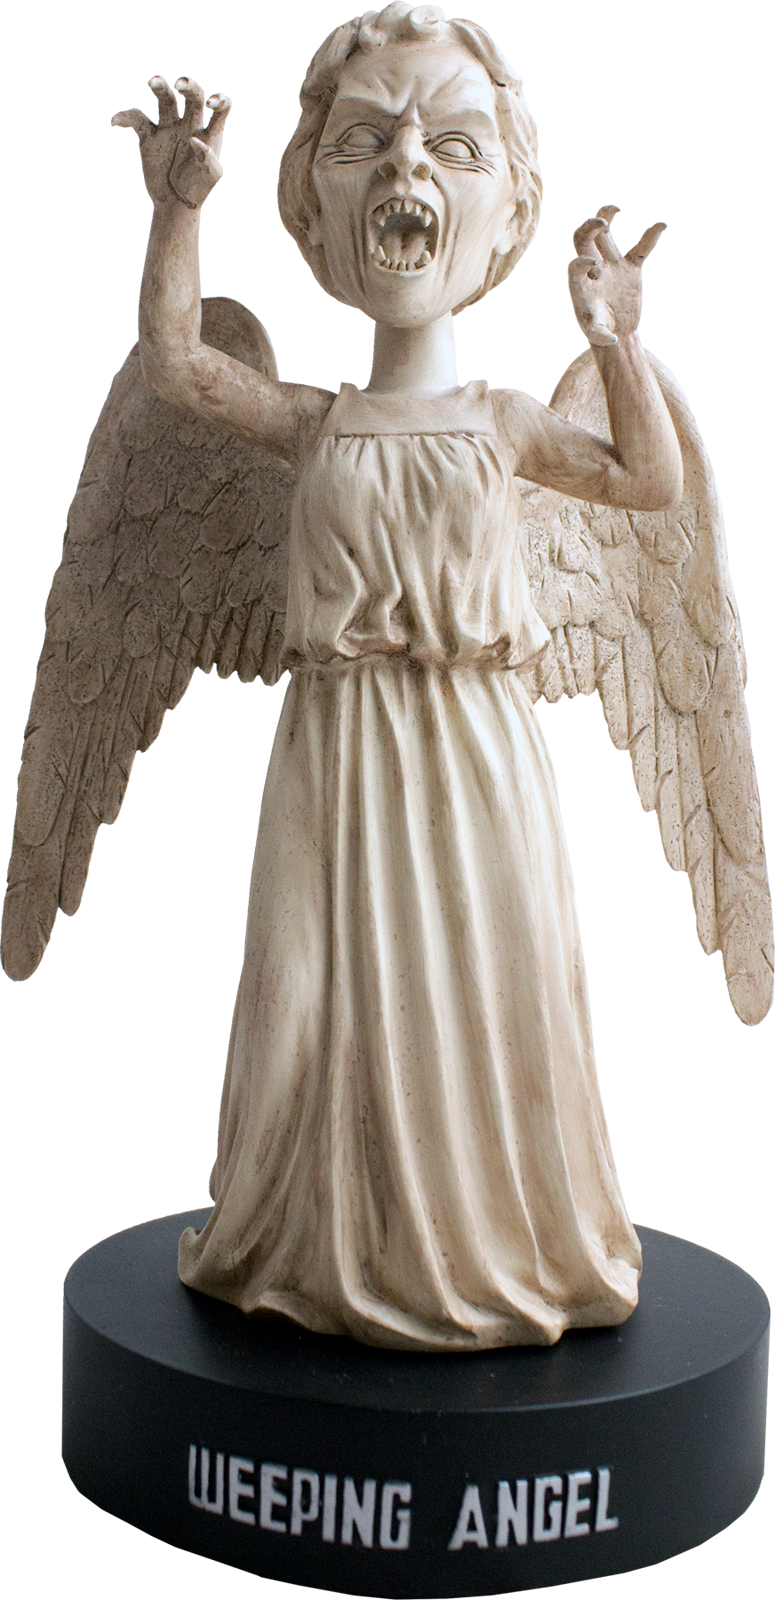 Doctor Who Weeping Angel Bobble Head Bobble Head Weeping Angel Doctor Who